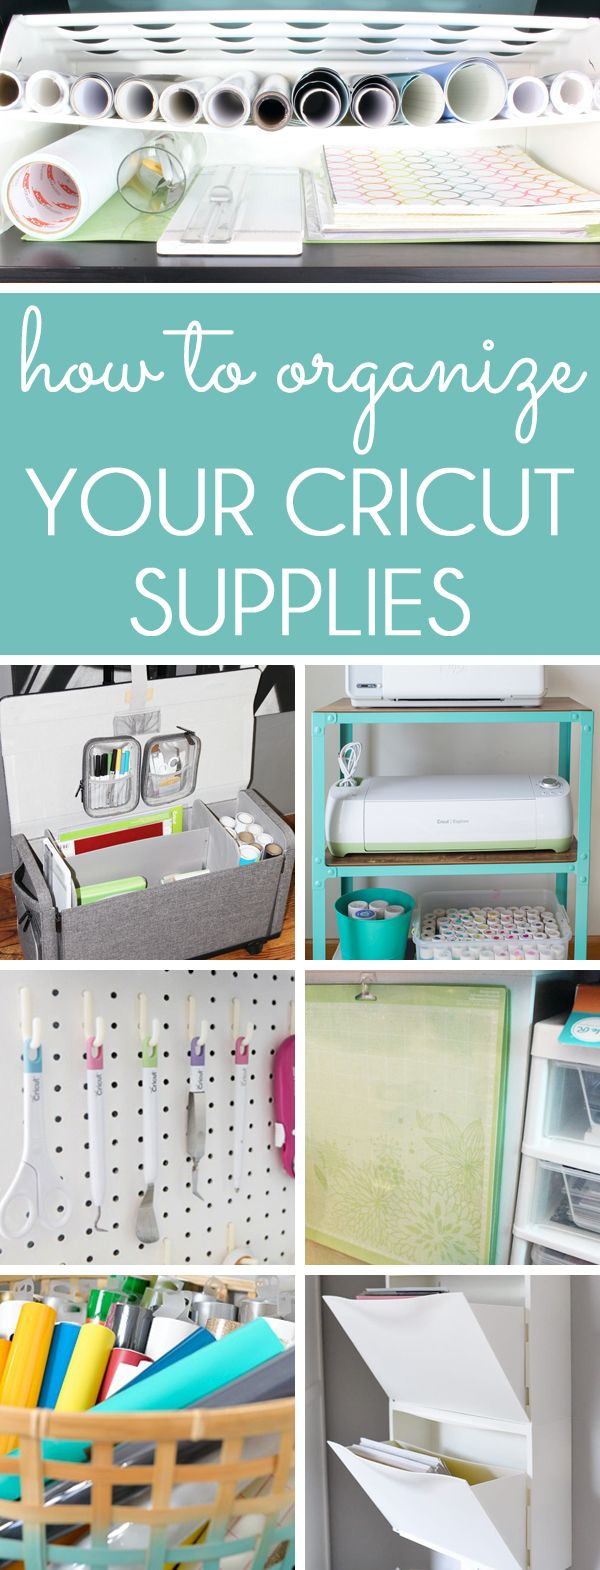 8198 Best Cricut Ideas From Bloggers And More Images On